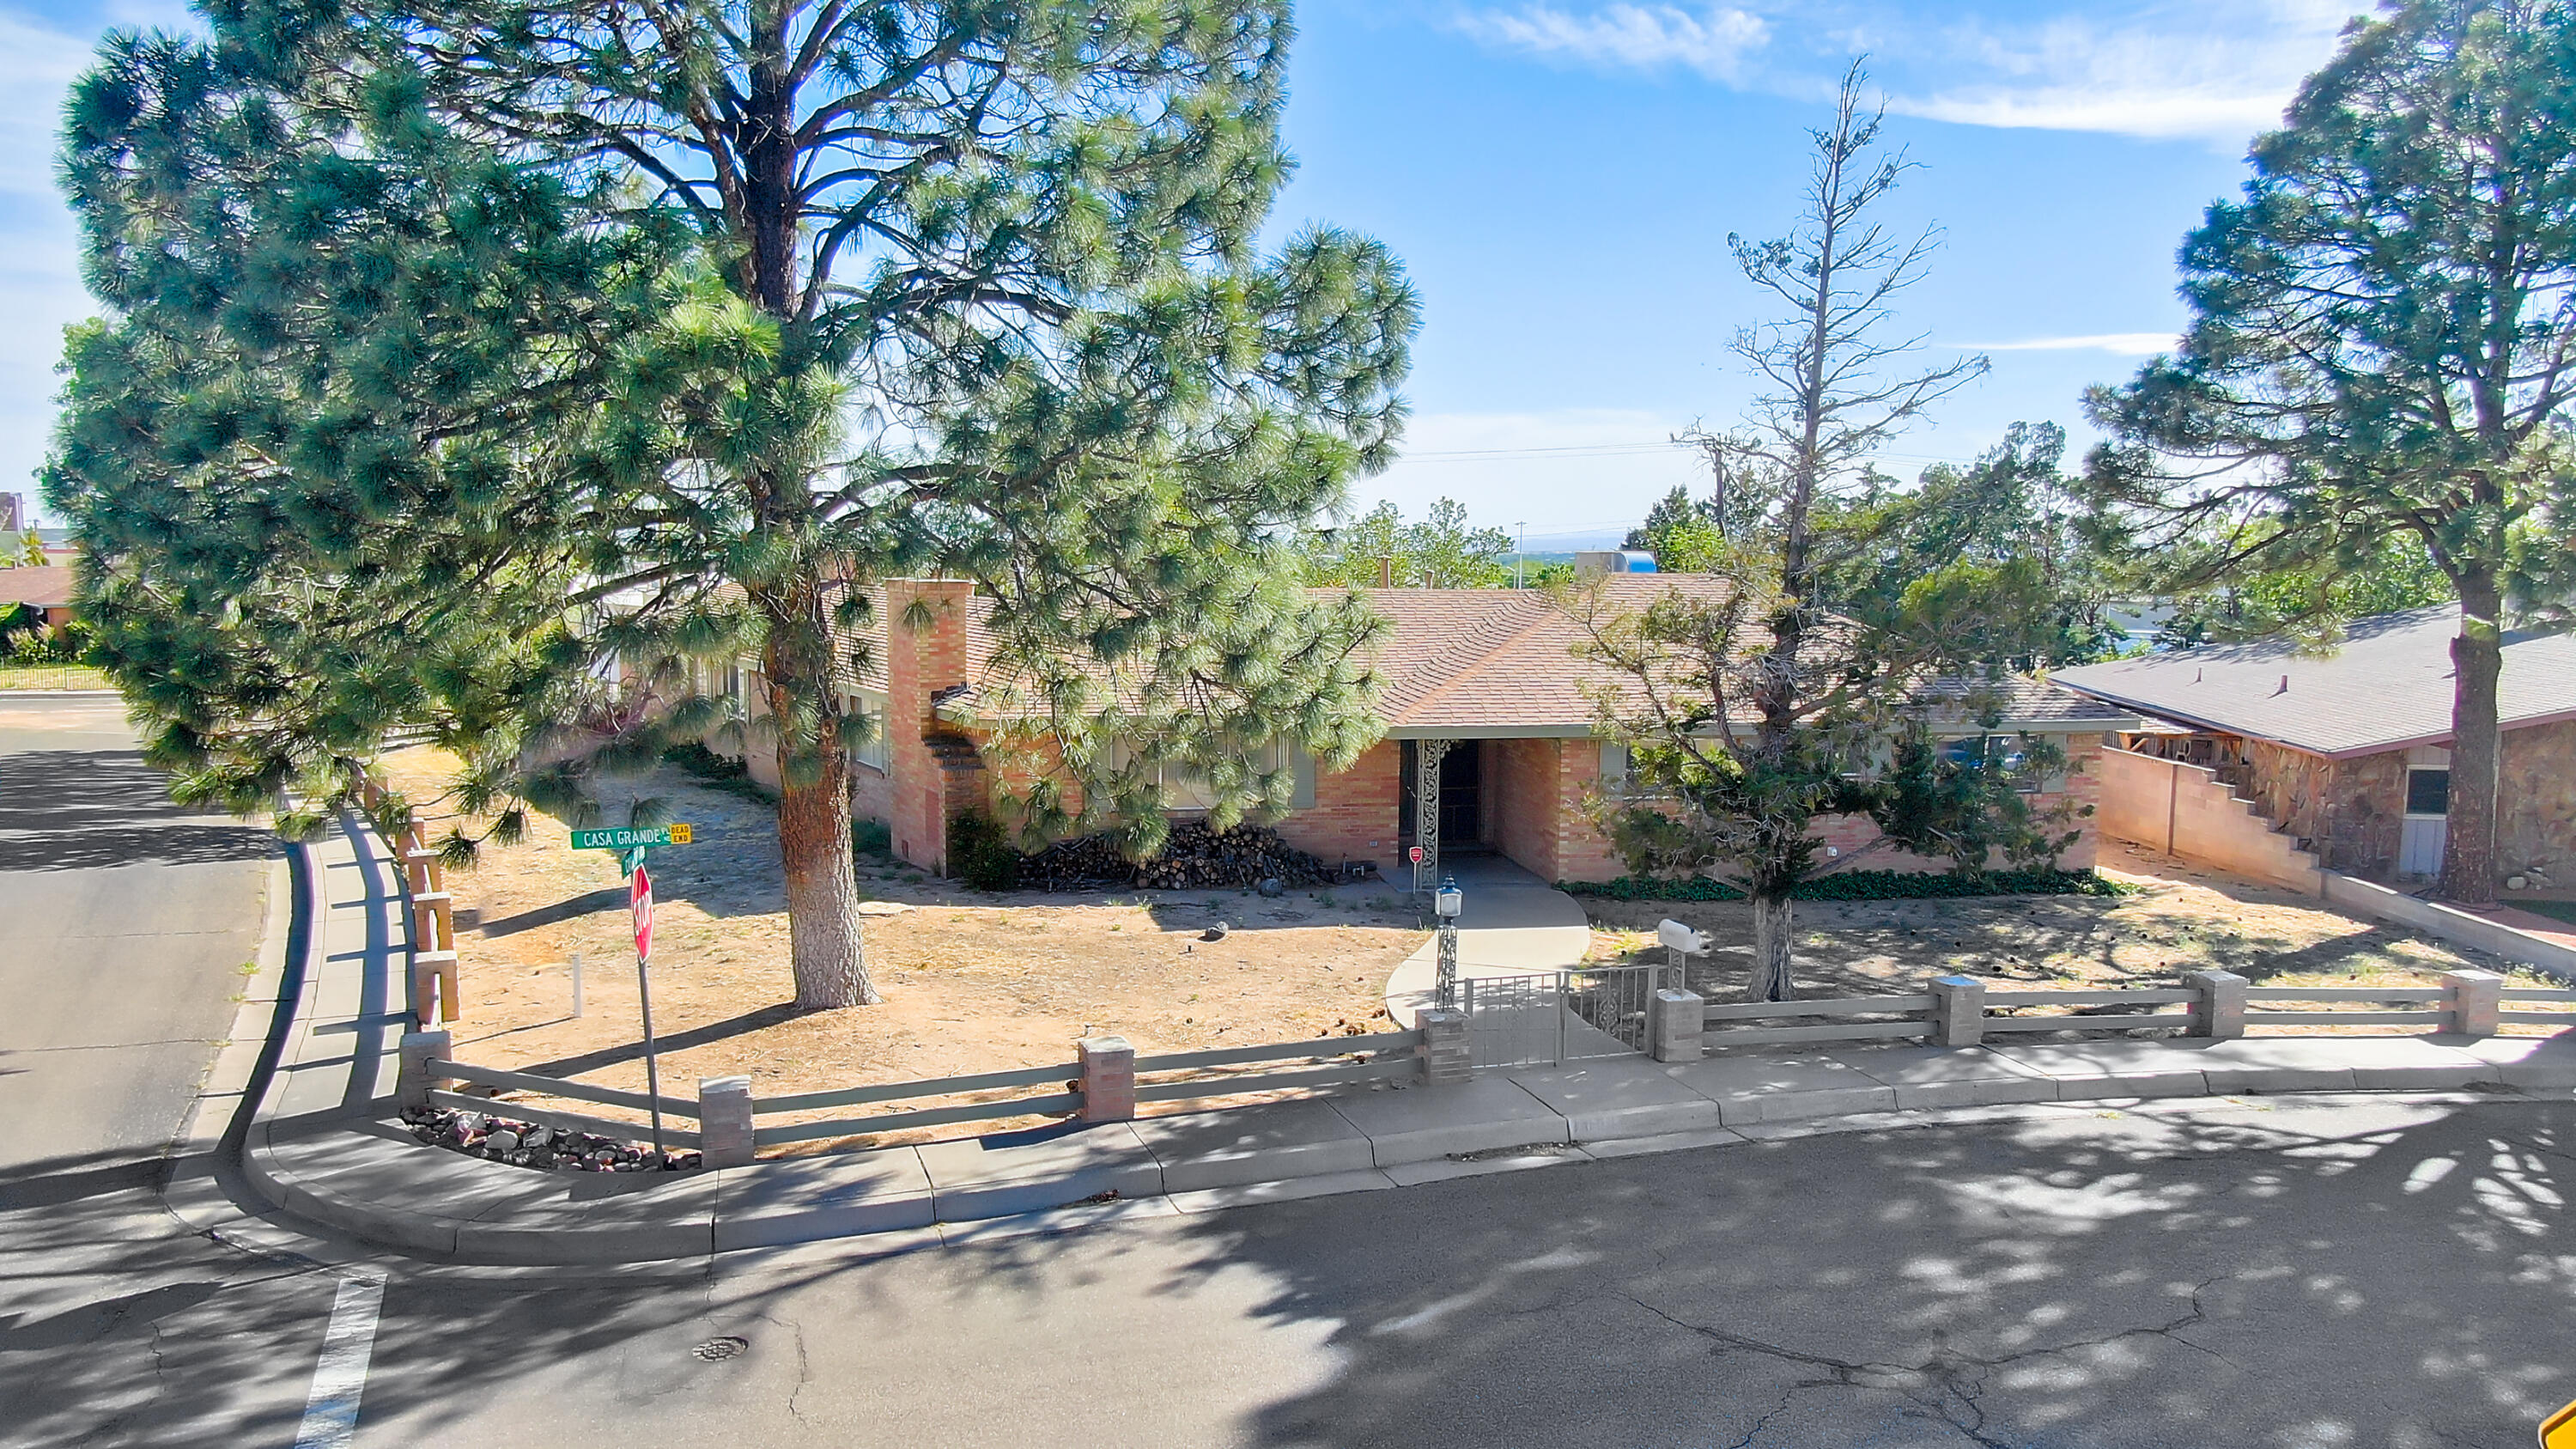 Custom home being sold ''AS IS''.  Located in the highly desirable Monterey Manor Subdivision. Iconic home on corner lot, this home will amaze you with its interesting layout which was designed for entertaining. Home features two living areas, 2 A/C units & 2 Evap units with sun/mud room. 1 fireplace and 1 woodburning stove. Galley Kitchen is adjacent to dining area and large wet bar, perfect for entertaining. Each bedroom has its own bathroom. Another bathroom is in the utility room with both Gas and Electric dryer hookups. King/Queen suite has a dressing area and makeup vanity with full bath. The huge back yard is accessible via seven different doors and has a 74' long angled portal style covered patio overlooking a huge back yard with back yard access RV pad & neighbors on only one side